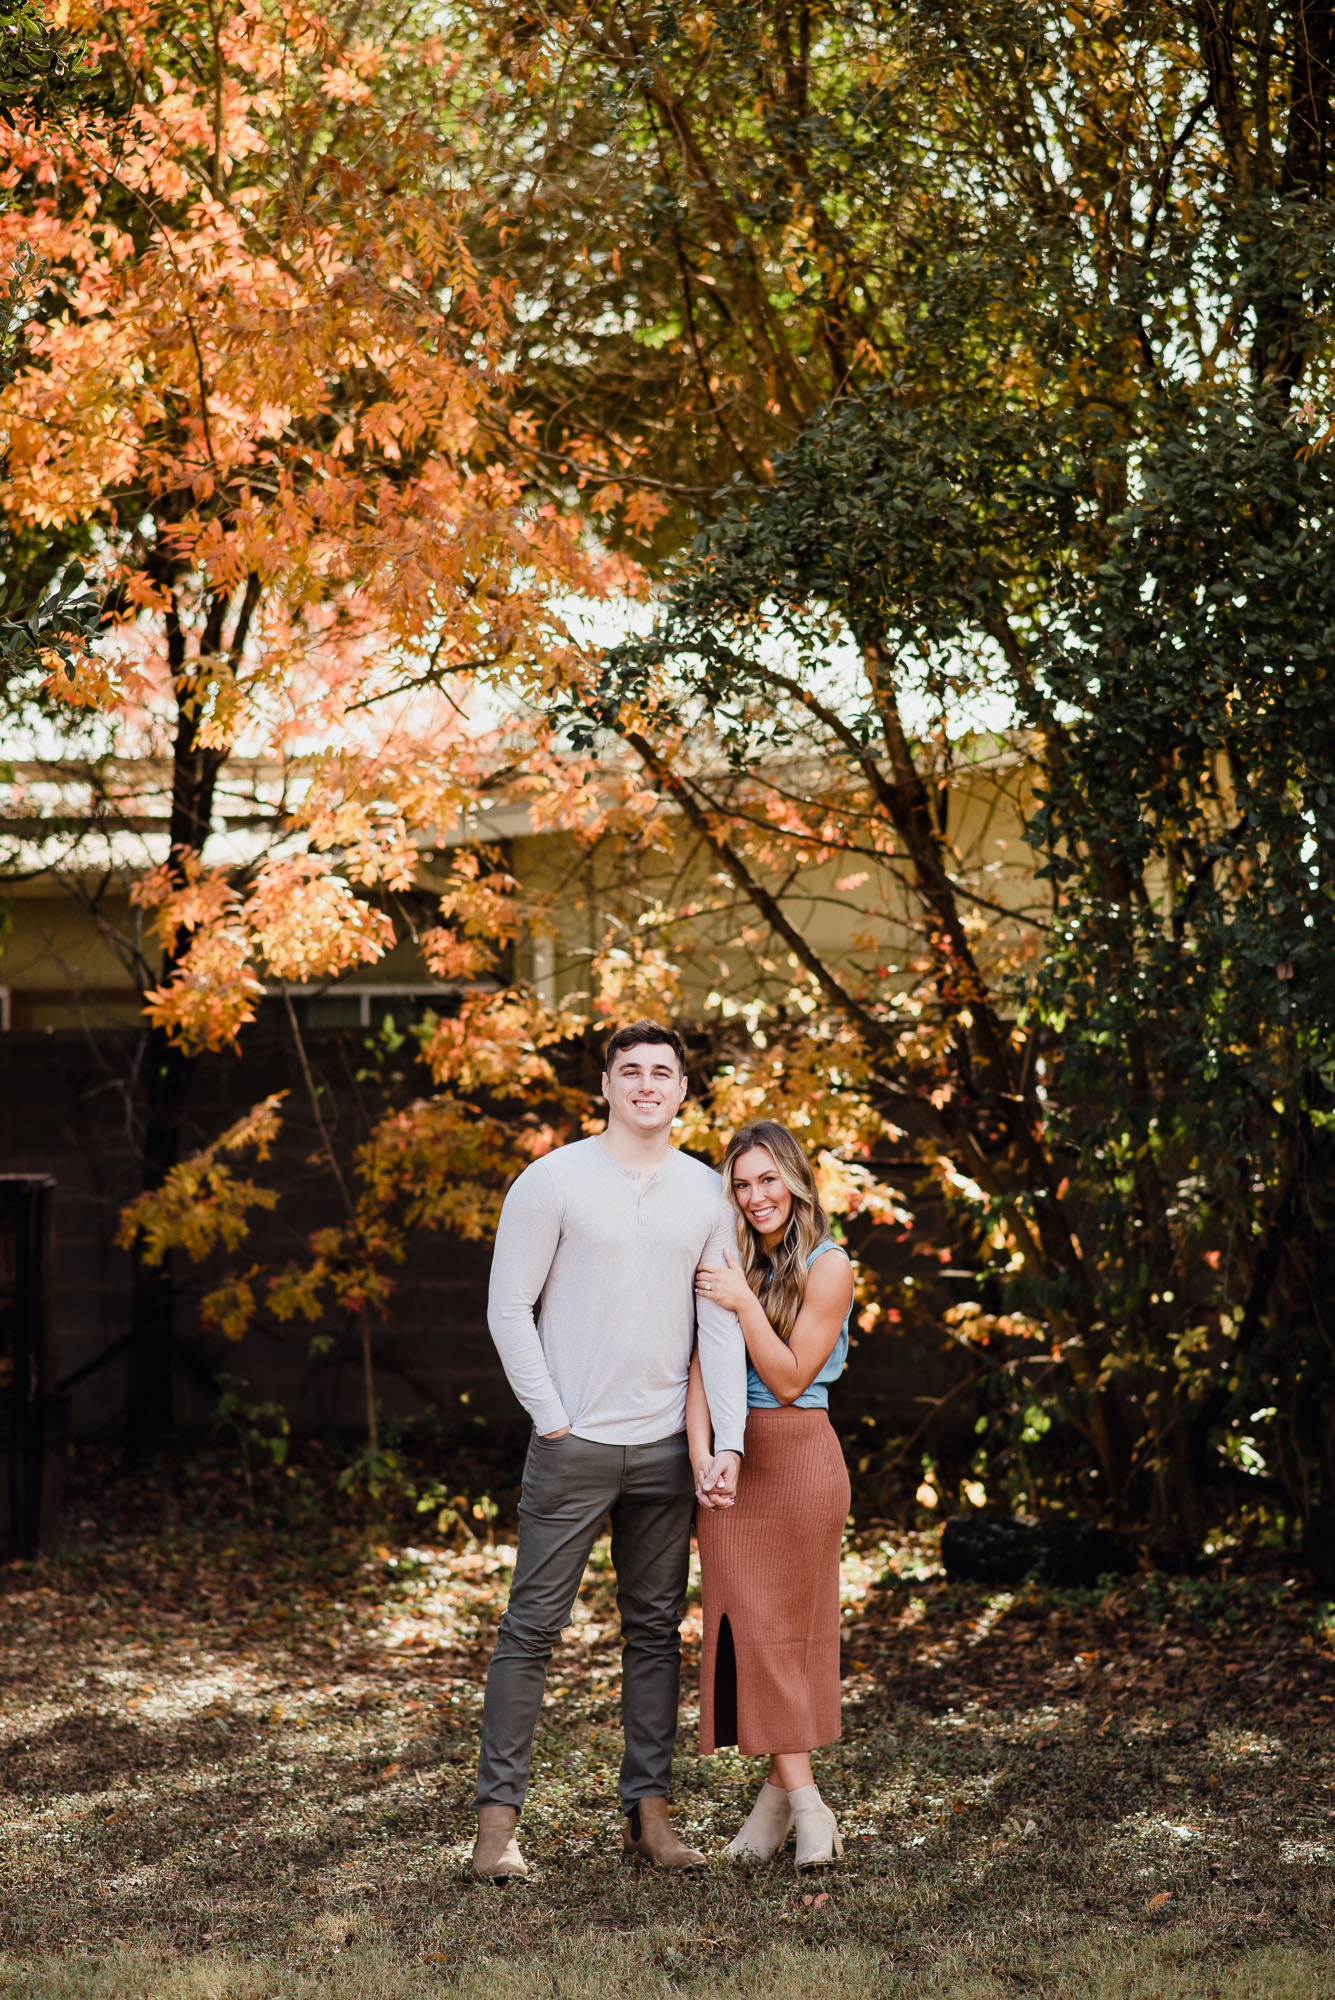 sekrit theater engagement photos, fall engagement session in austin, austin engagement session ideas, colorful wedding and portrait photography in austin,